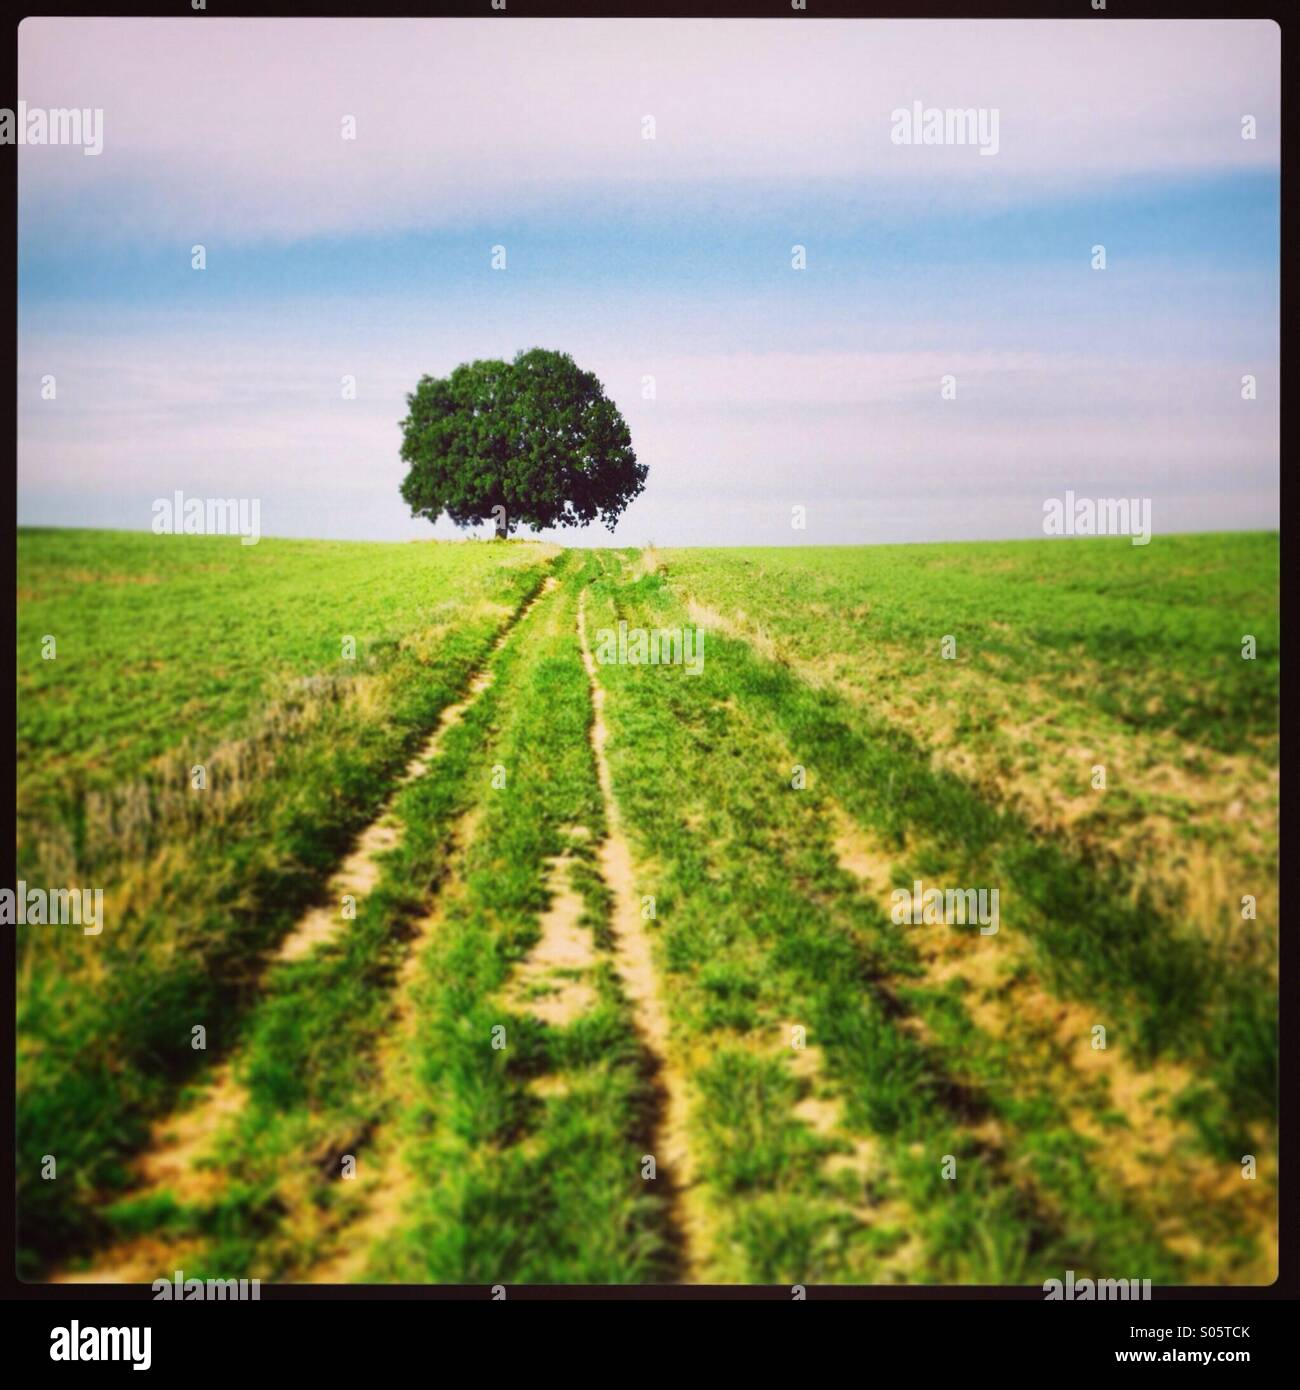 Tree in the meadows. - Stock Image